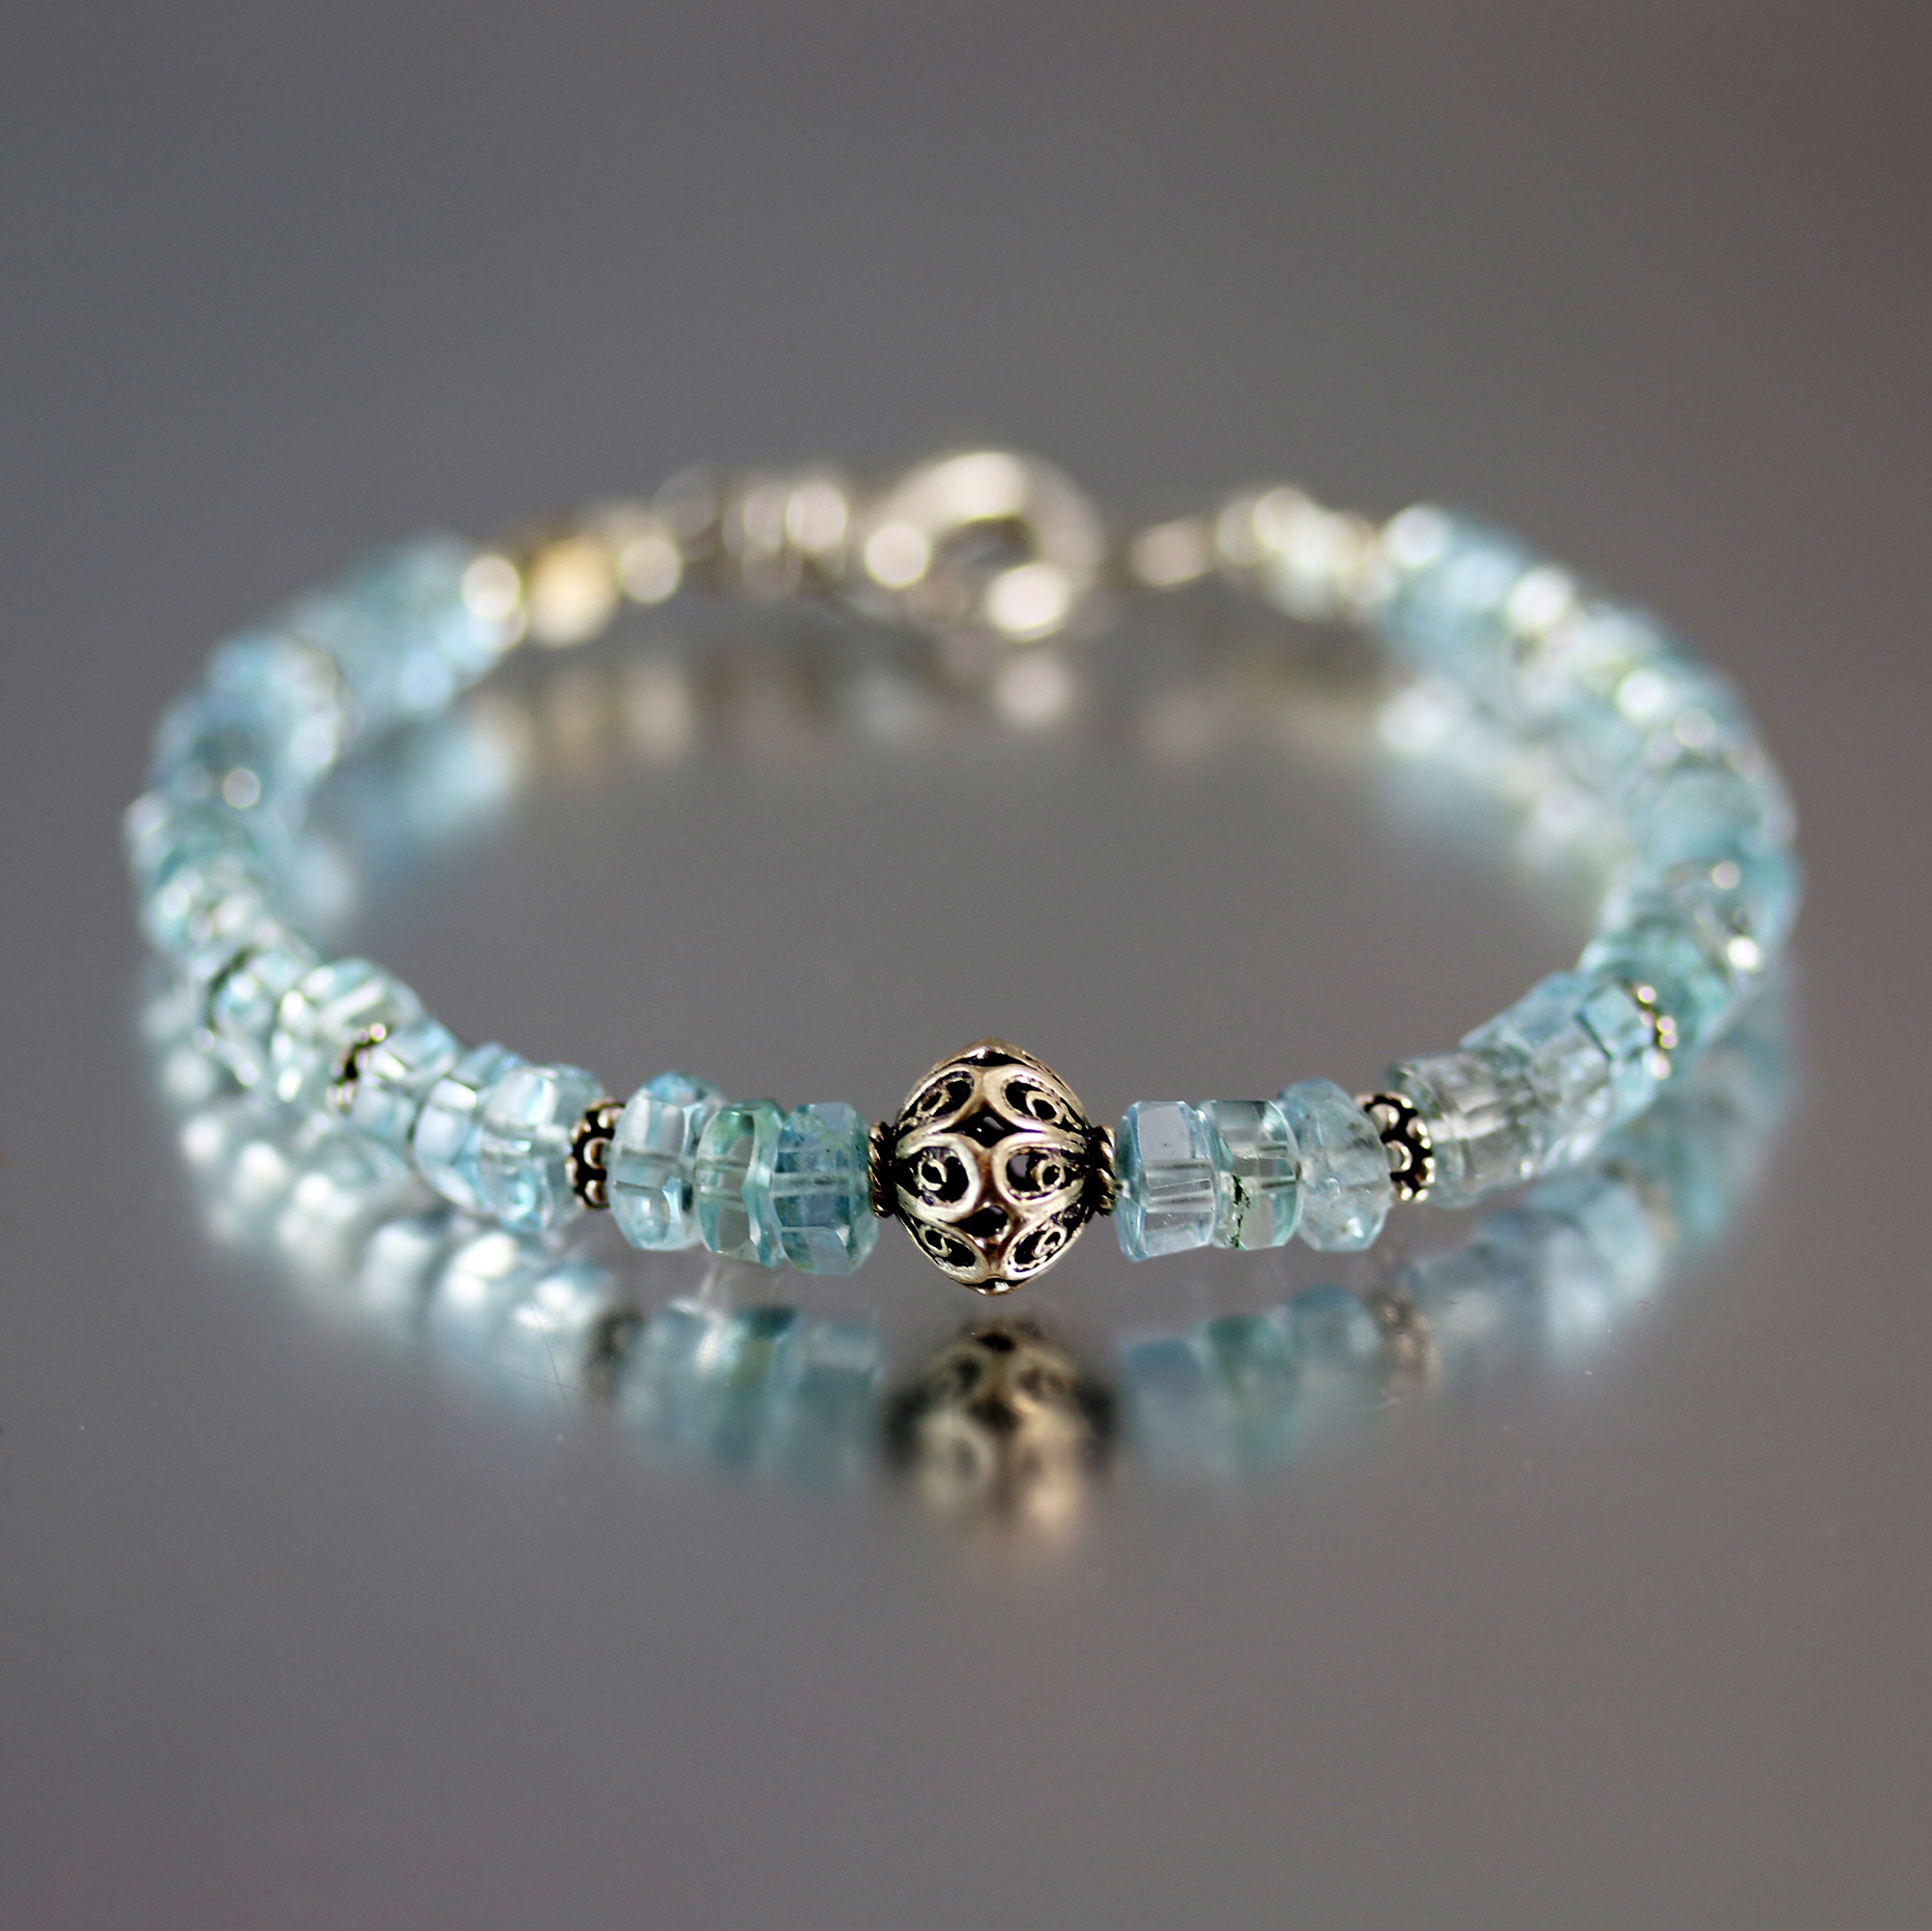 Aquamarine Hexagonal Bead Bracelet Sterling Silver